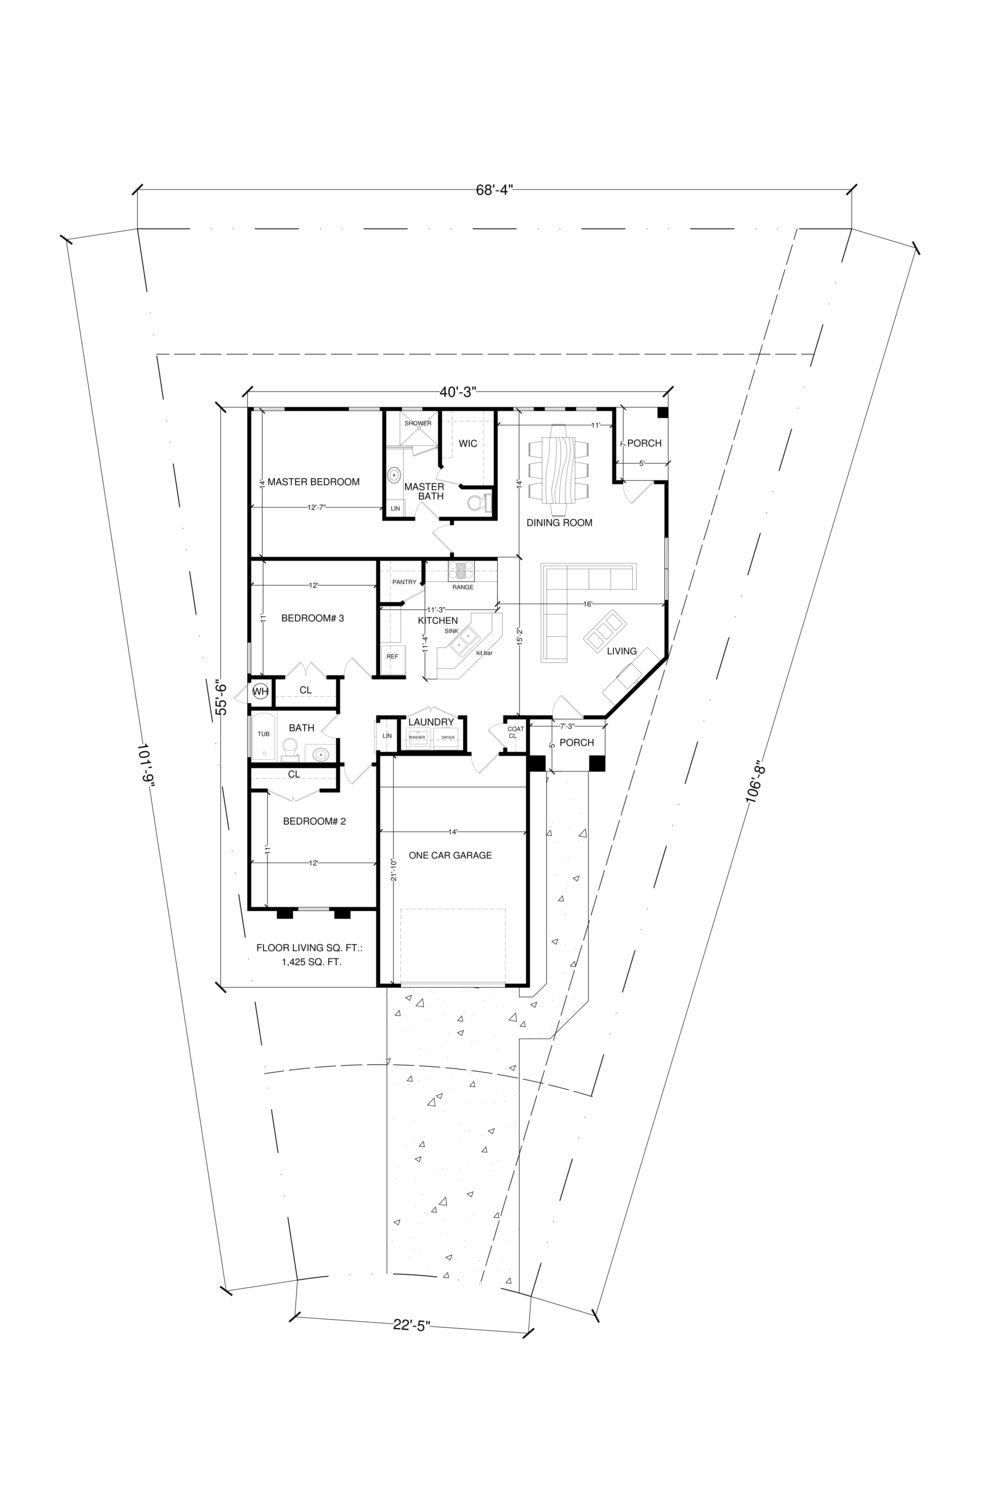 7055 Hallie Ridge floor plan for advertising-1.jpg